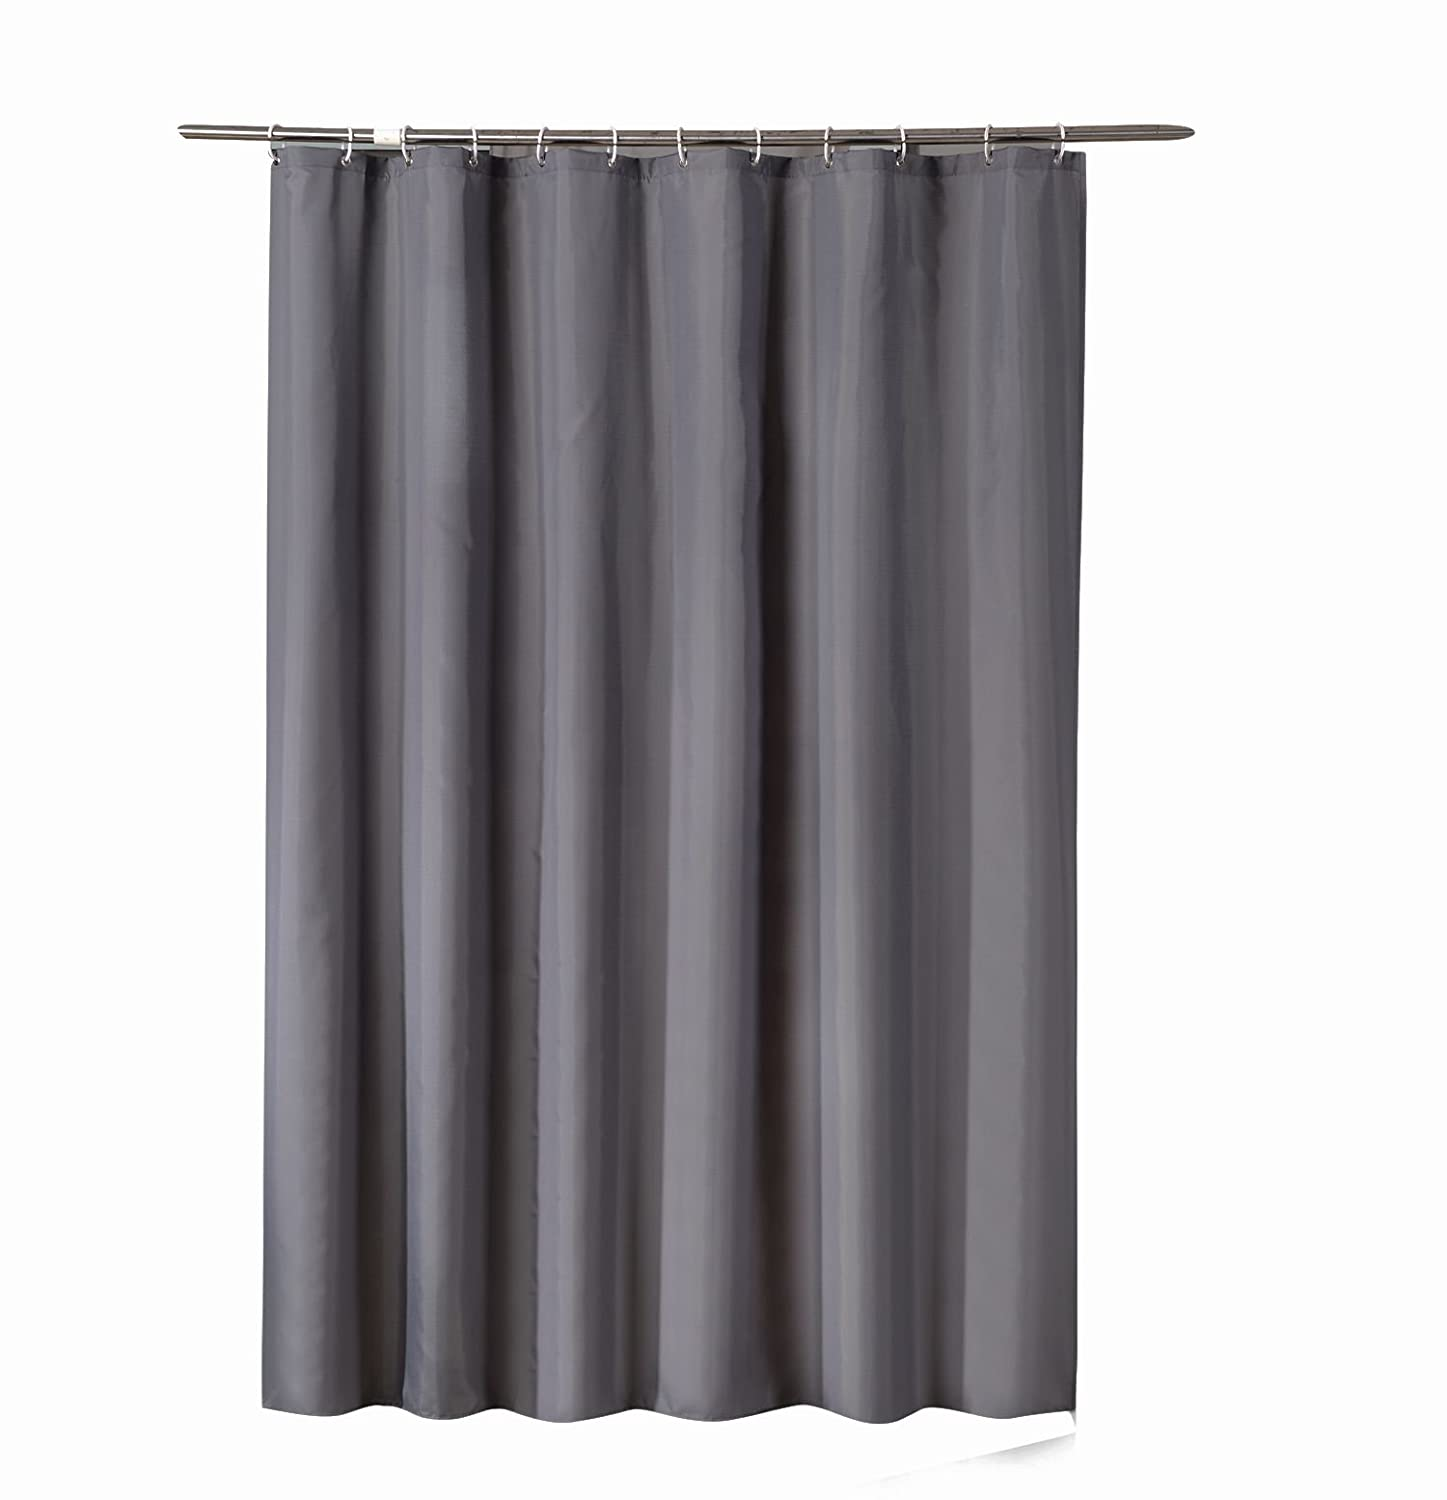 Sfoothome 90cm Wide x 180cm Long Black Shower Curtain ,Waterproof Polyester Fabric Shower Curtain Liner ,Midew Resistant Washable Bath Curtain For Bathroom With Anti Rust Grommets , Plastic Curtain Rings And Heavy Weighted Hem